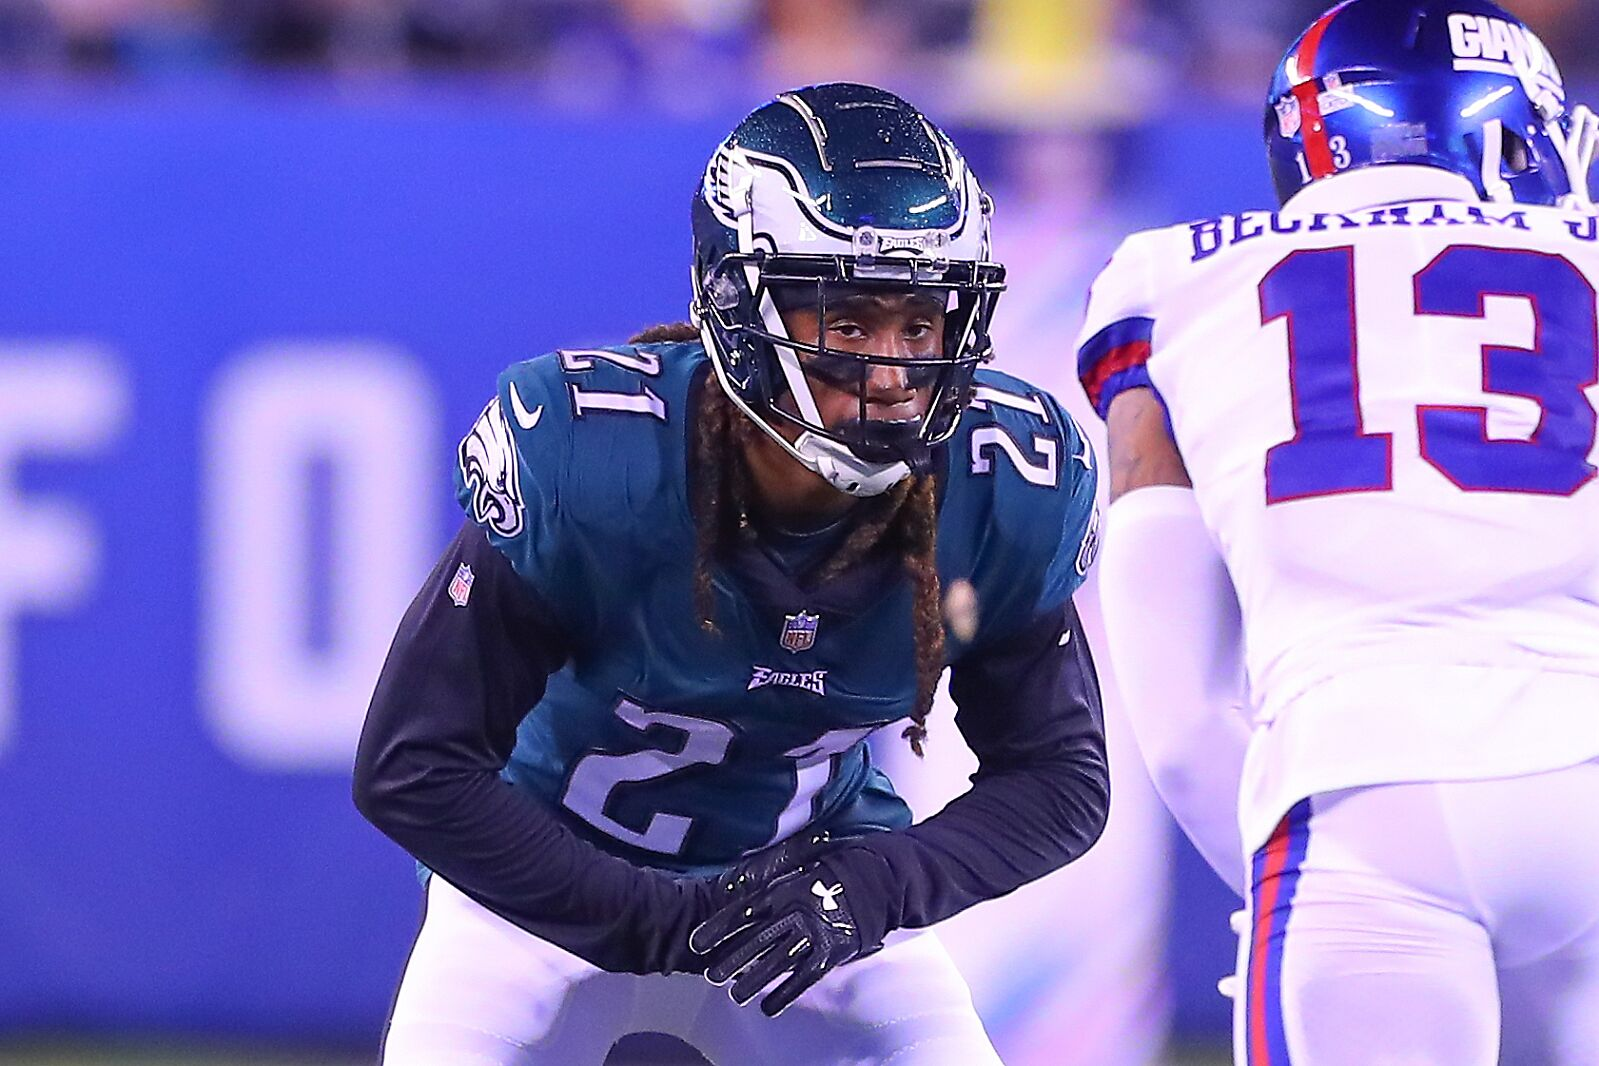 432699d507f3e4 EAST RUTHERFORD, NJ – OCTOBER 11: Philadelphia Eagles cornerback Ronald  Darby (21) during the National Football League game between the New York  Giants and ...